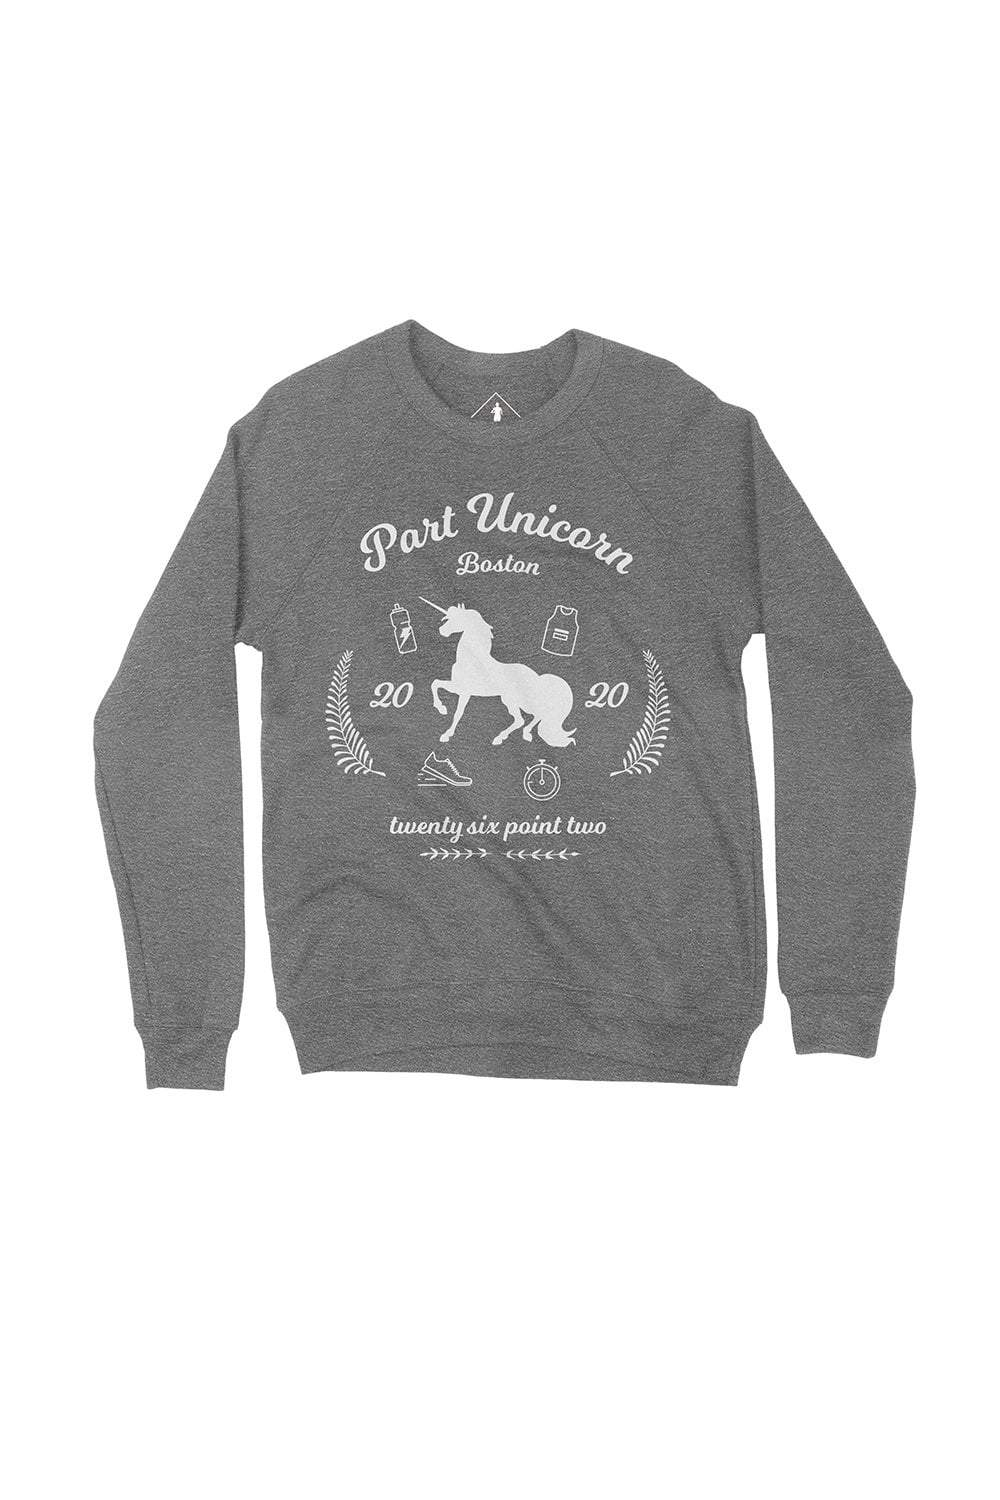 Part Unicorn Sweatshirt - Sarah Marie Design Studio